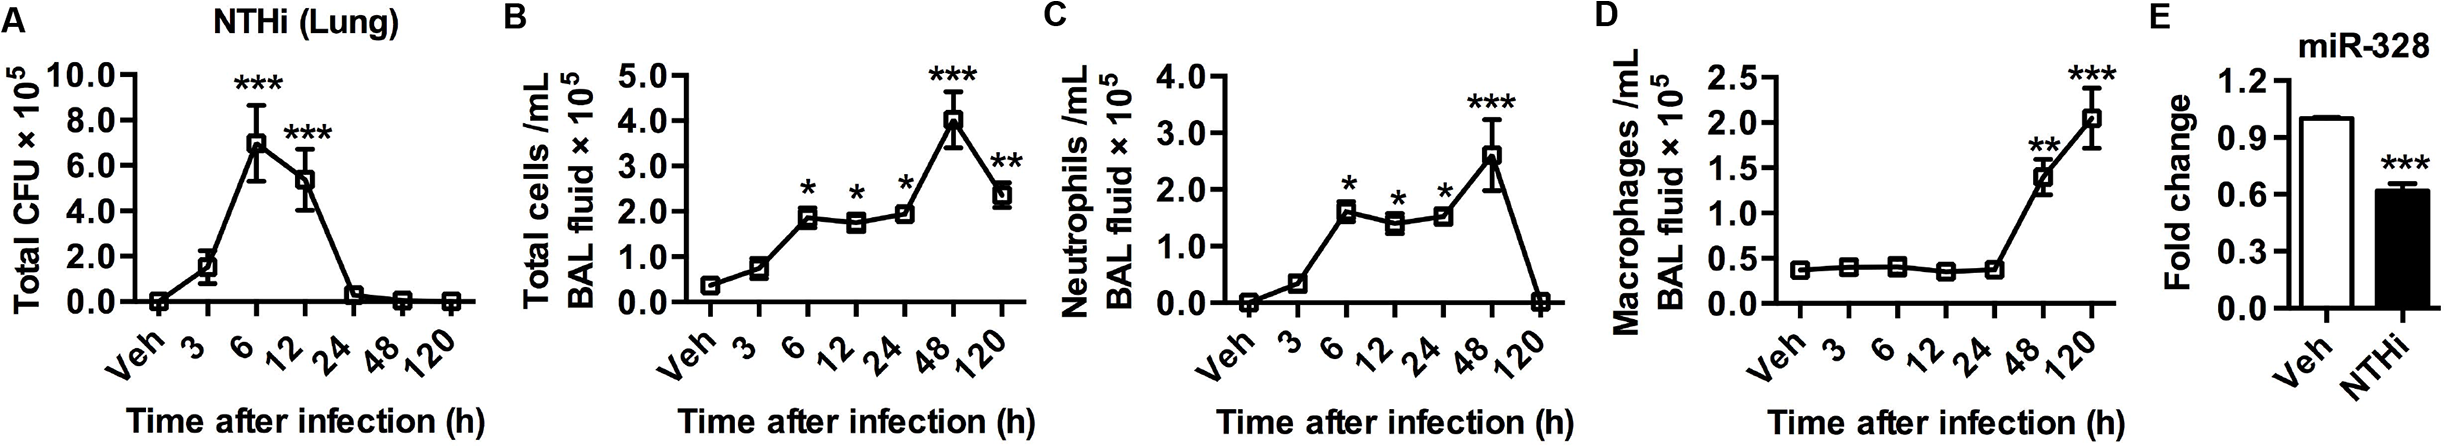 MiR-328 is down-regulated after NTHi infection.